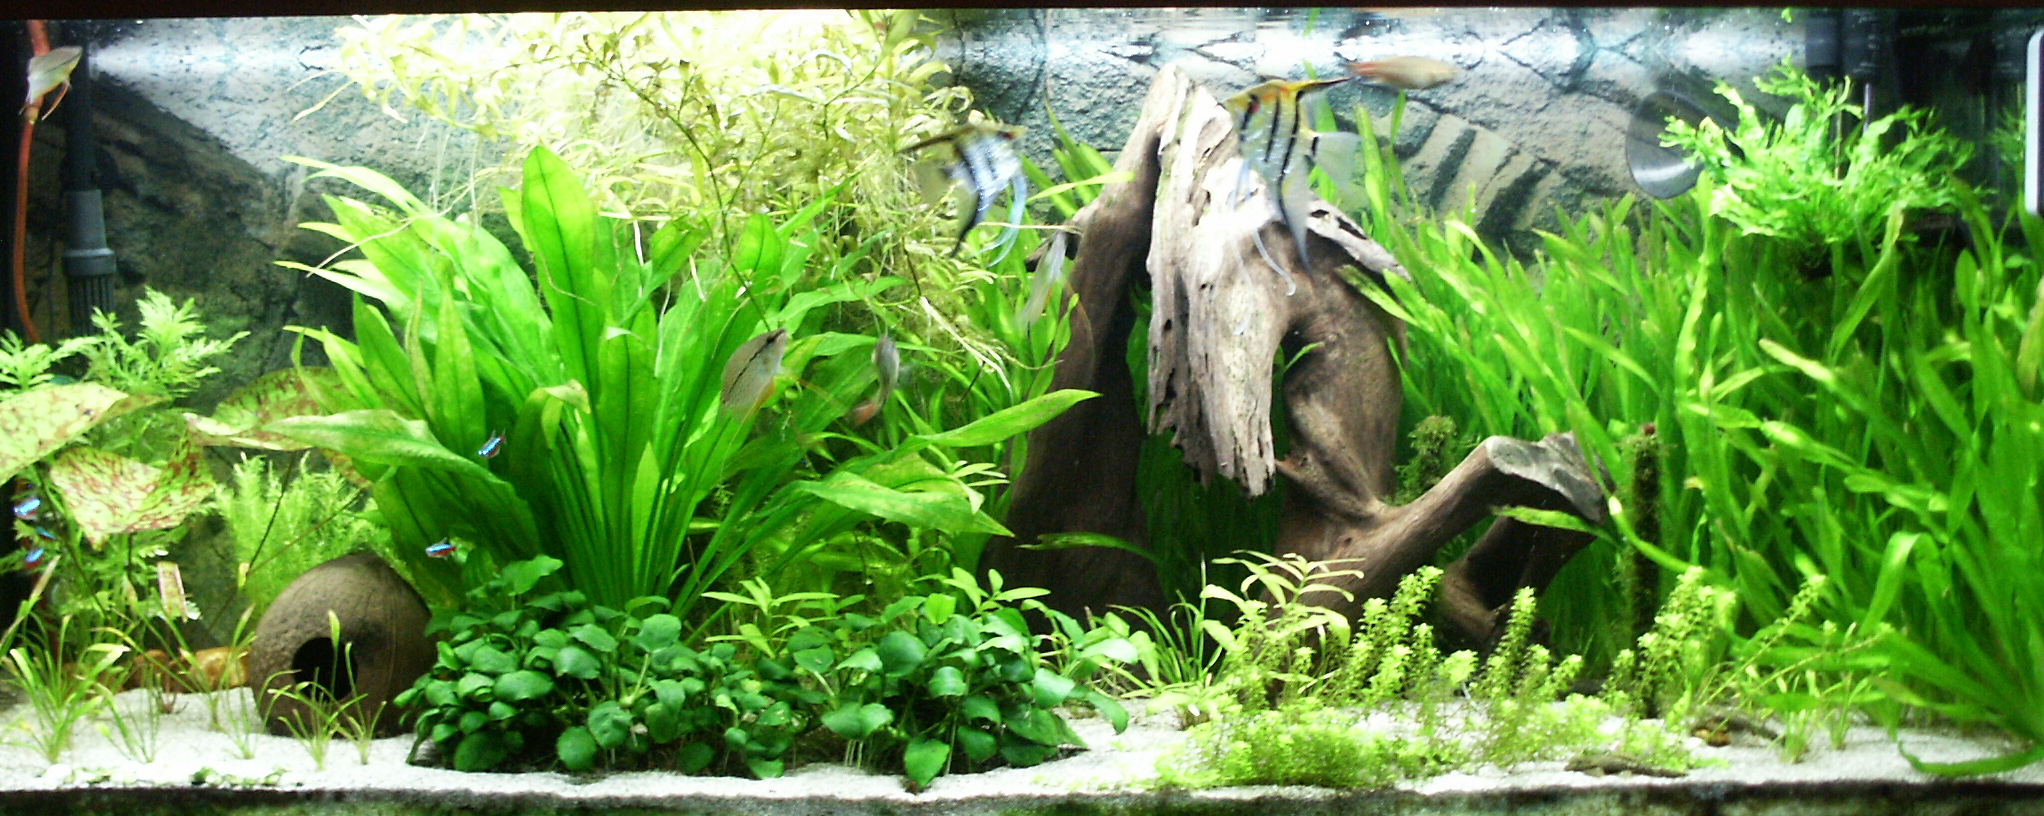 A well planted aquarium <!-- convert -->